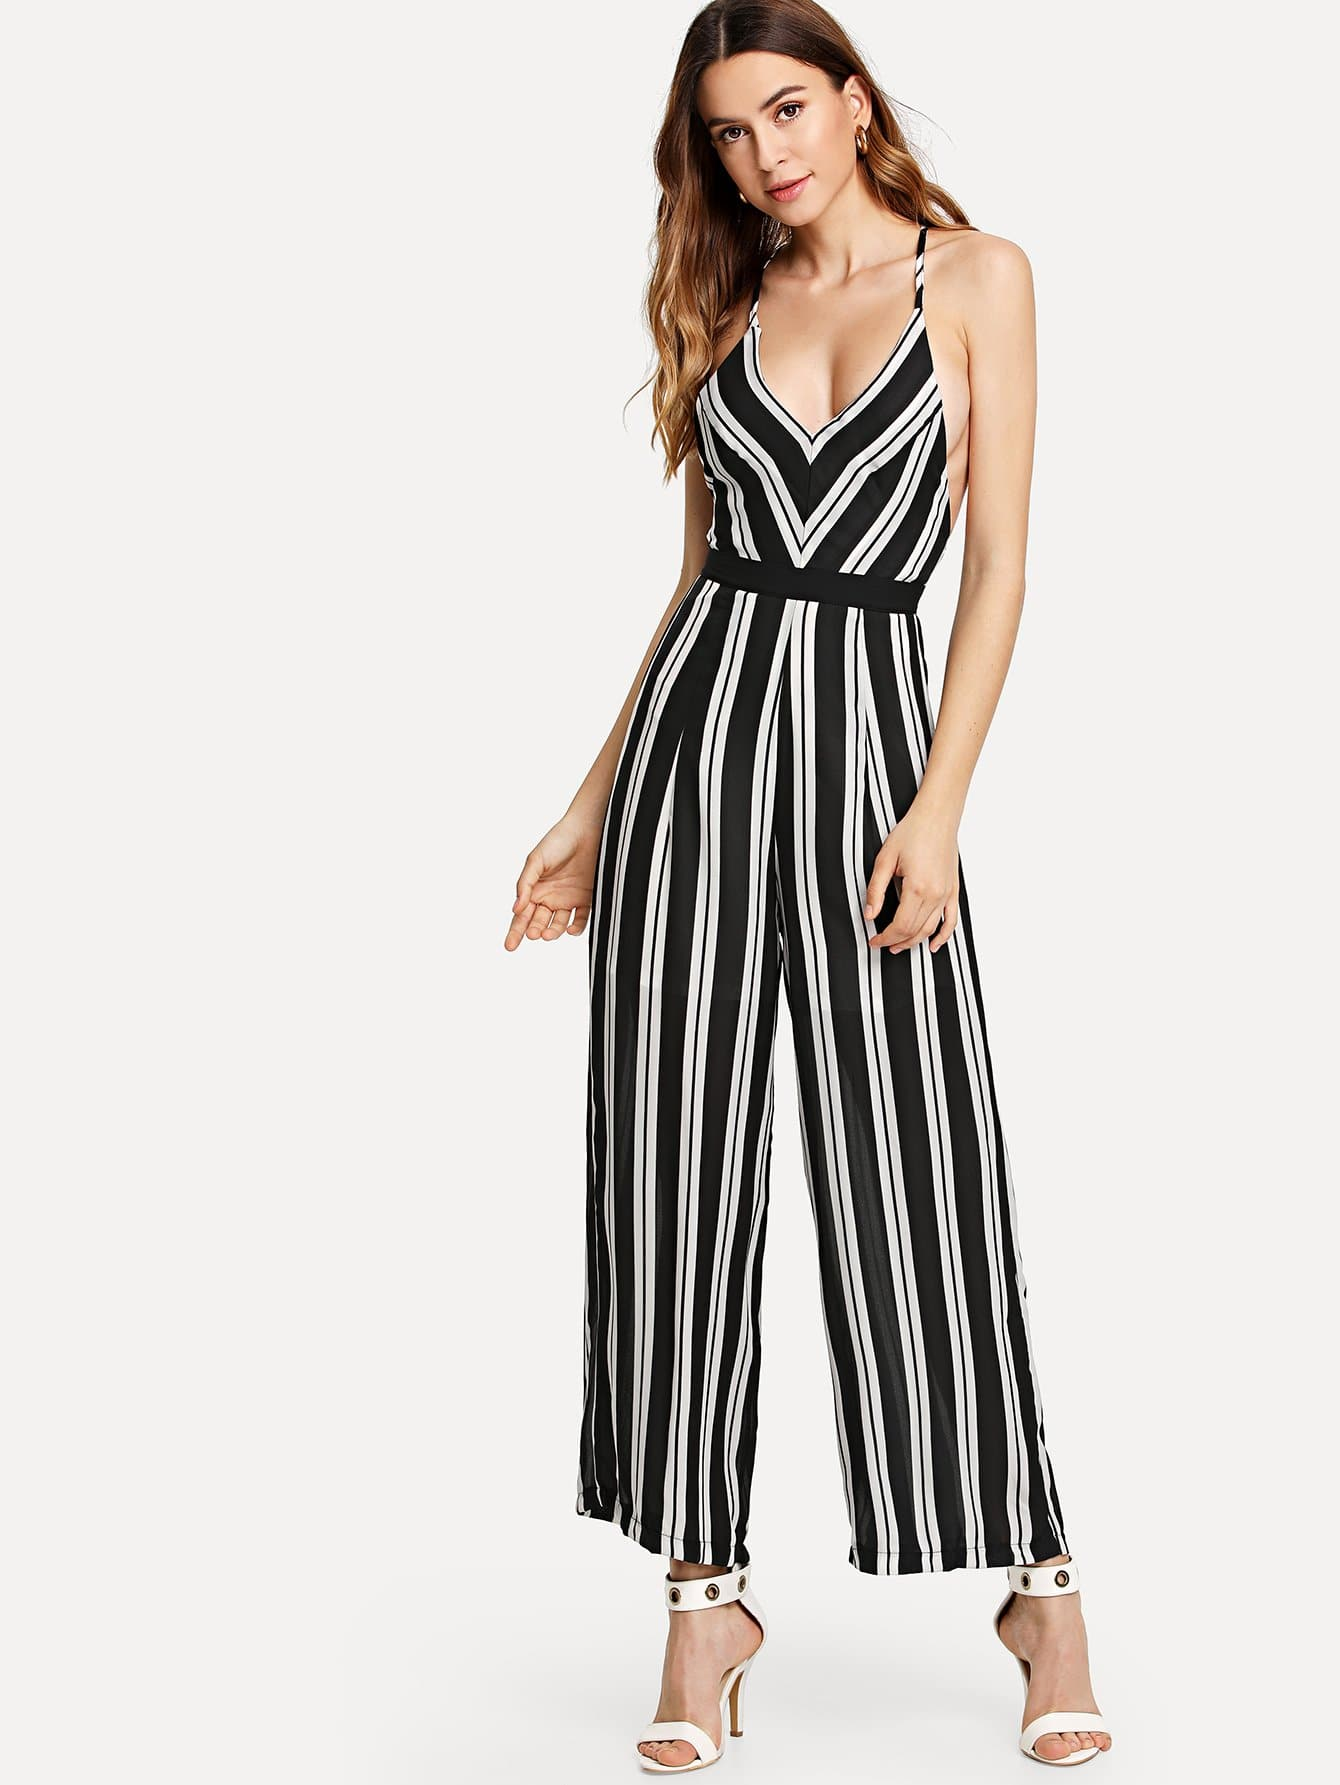 Backless Criss Cross Back Striped Cami Romper stylish cami striped backless dress